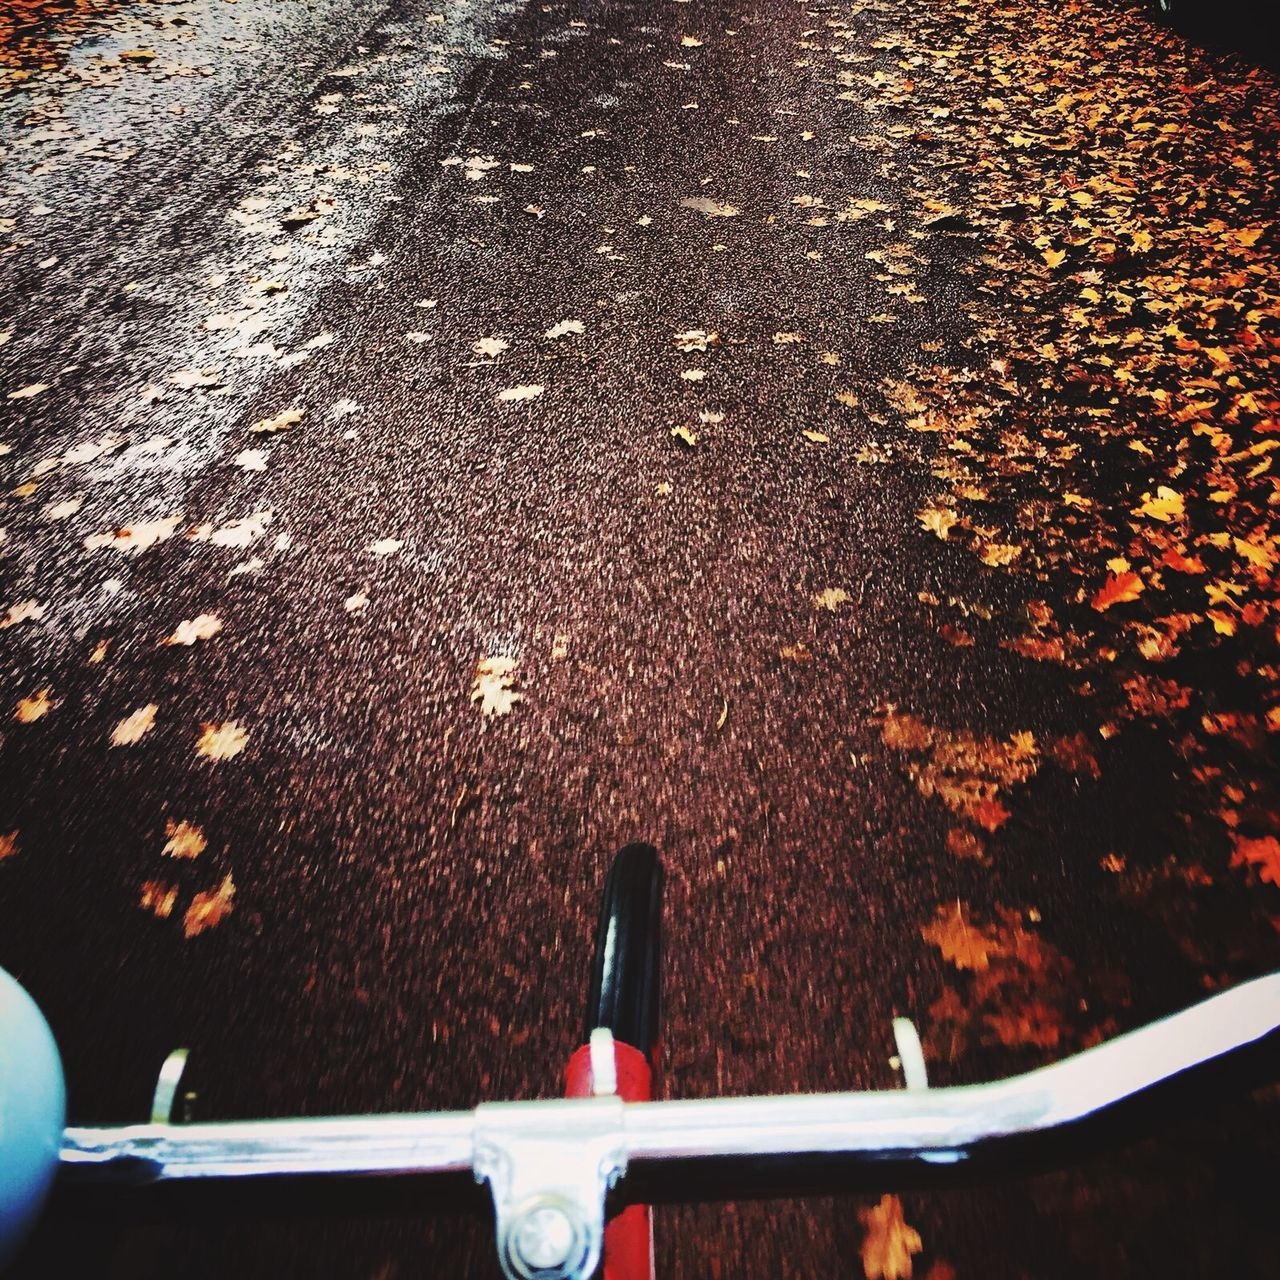 transportation, outdoors, no people, day, mode of transport, close-up, autumn, water, nature